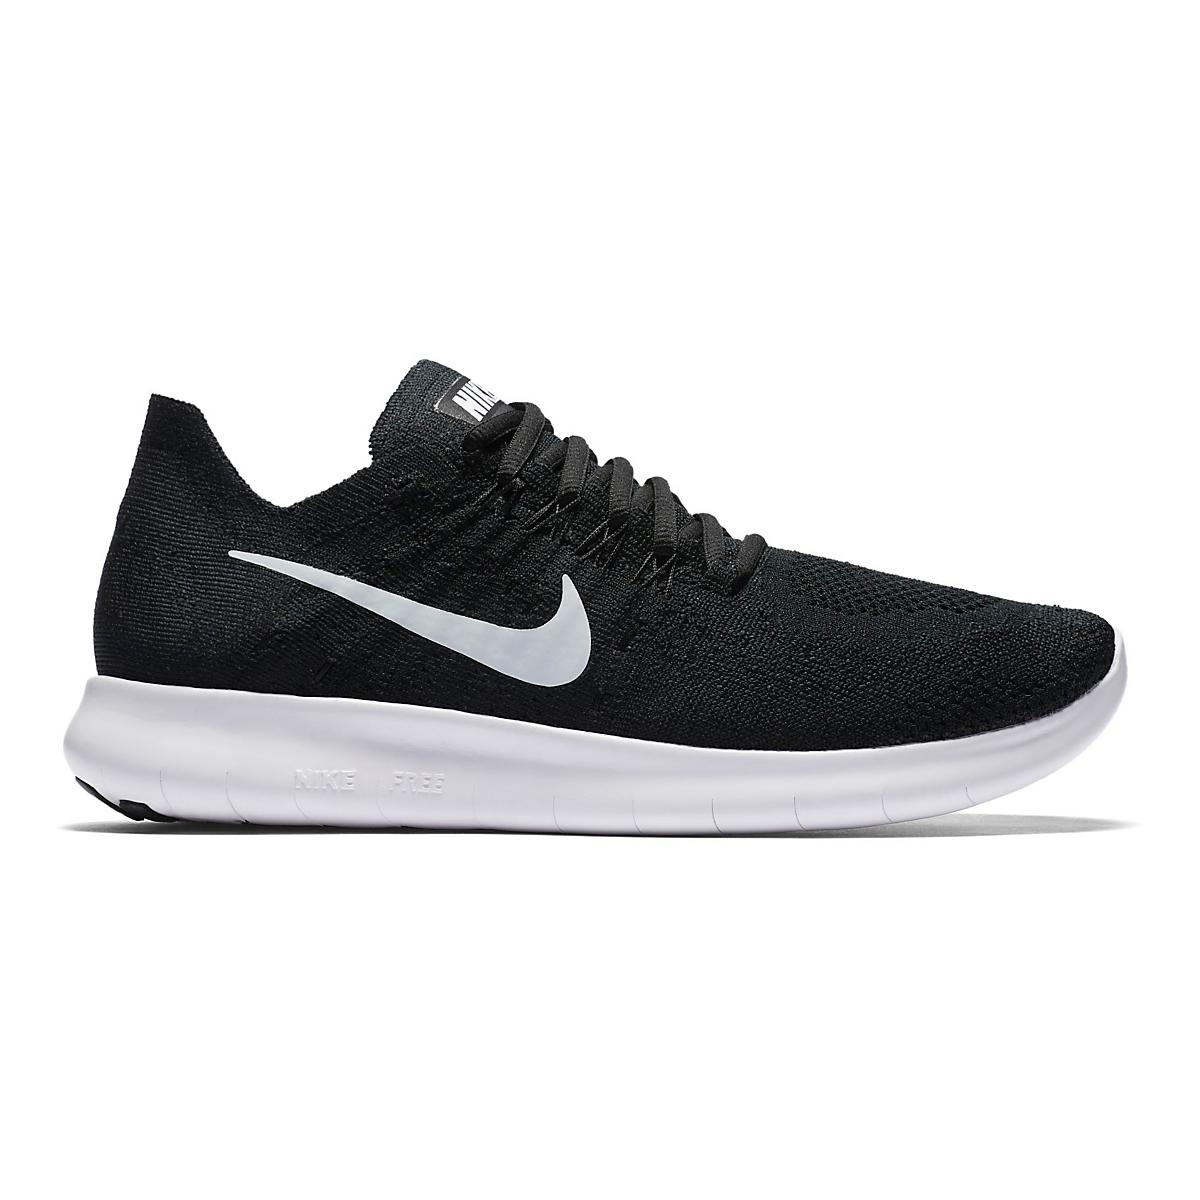 newest 0a8b3 7934e Womens Nike Free RN Flyknit 2017 Running Shoe at Road Runner Sports